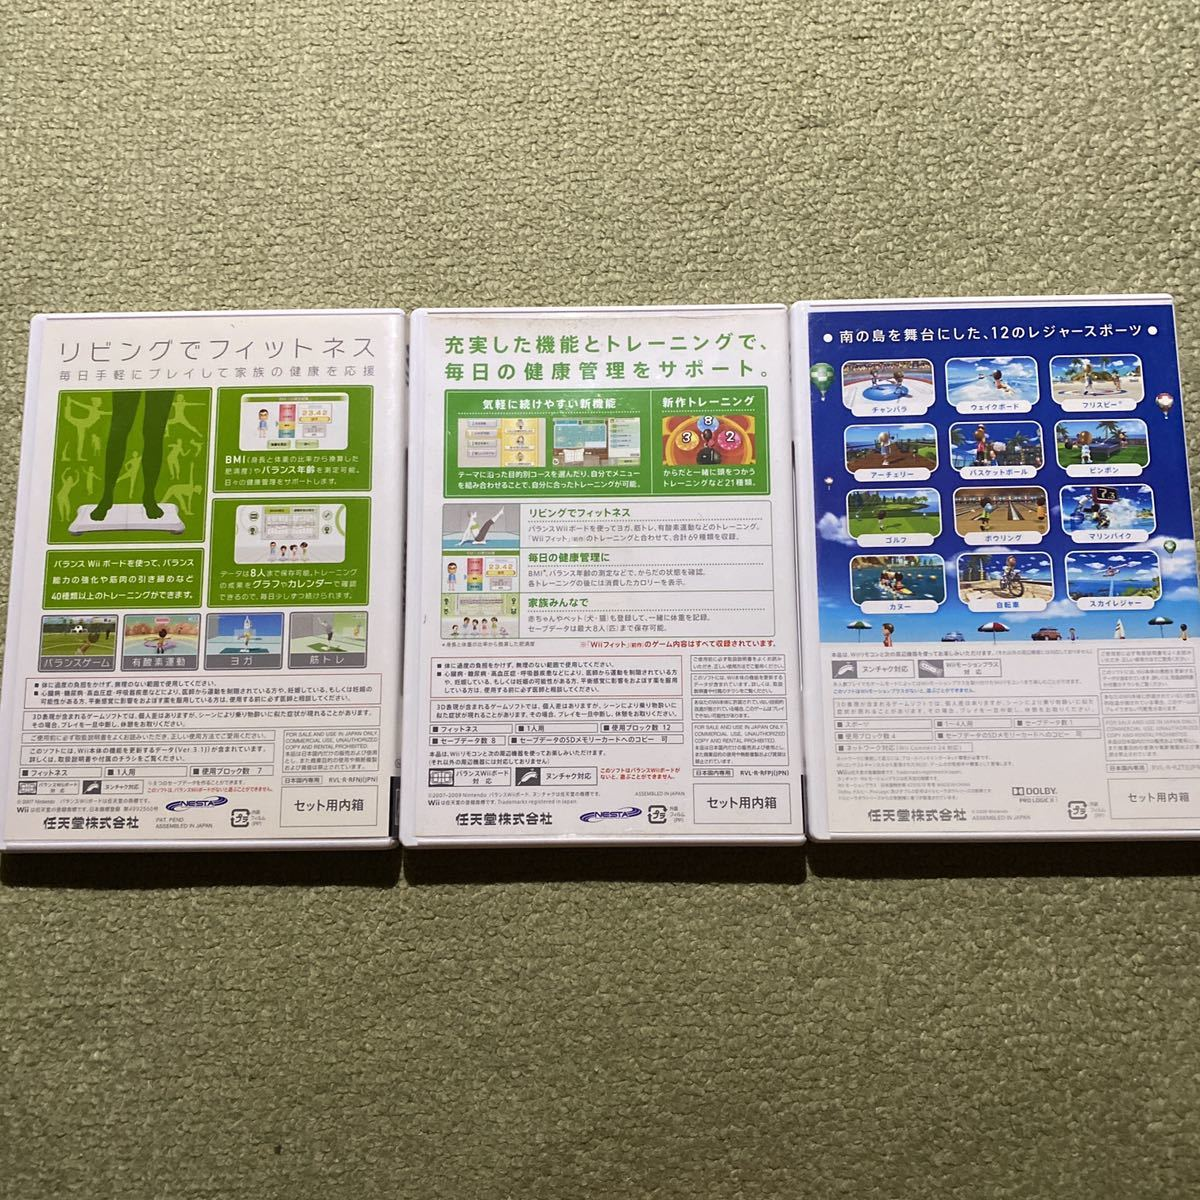 Wii Wii Fit Wii Fit Plus Wii Sportsリゾート 即決